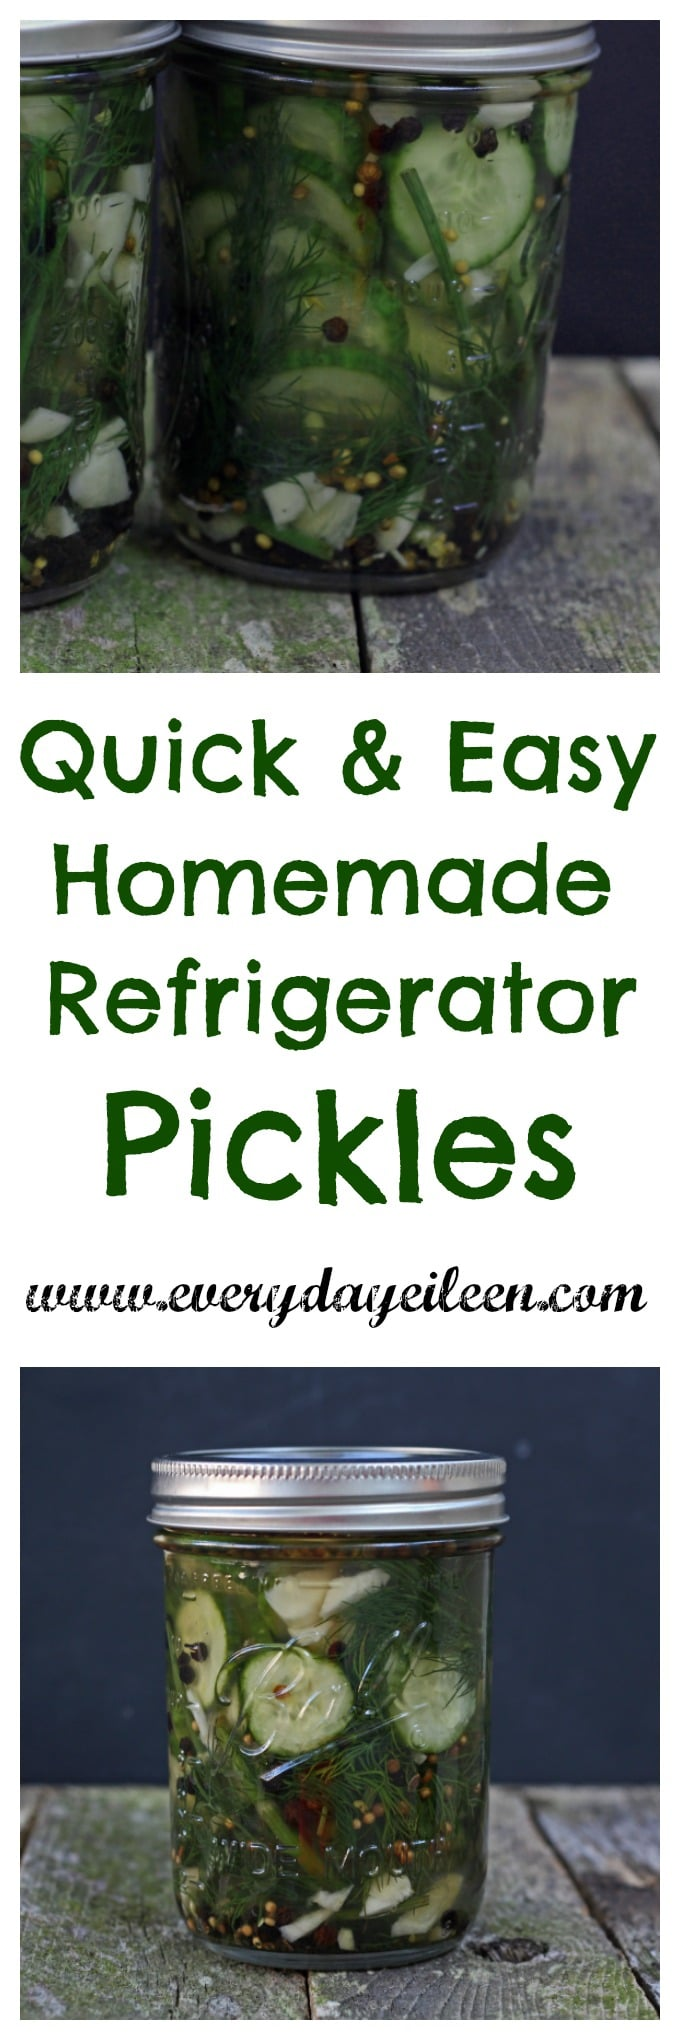 quick& easy homemade pickles